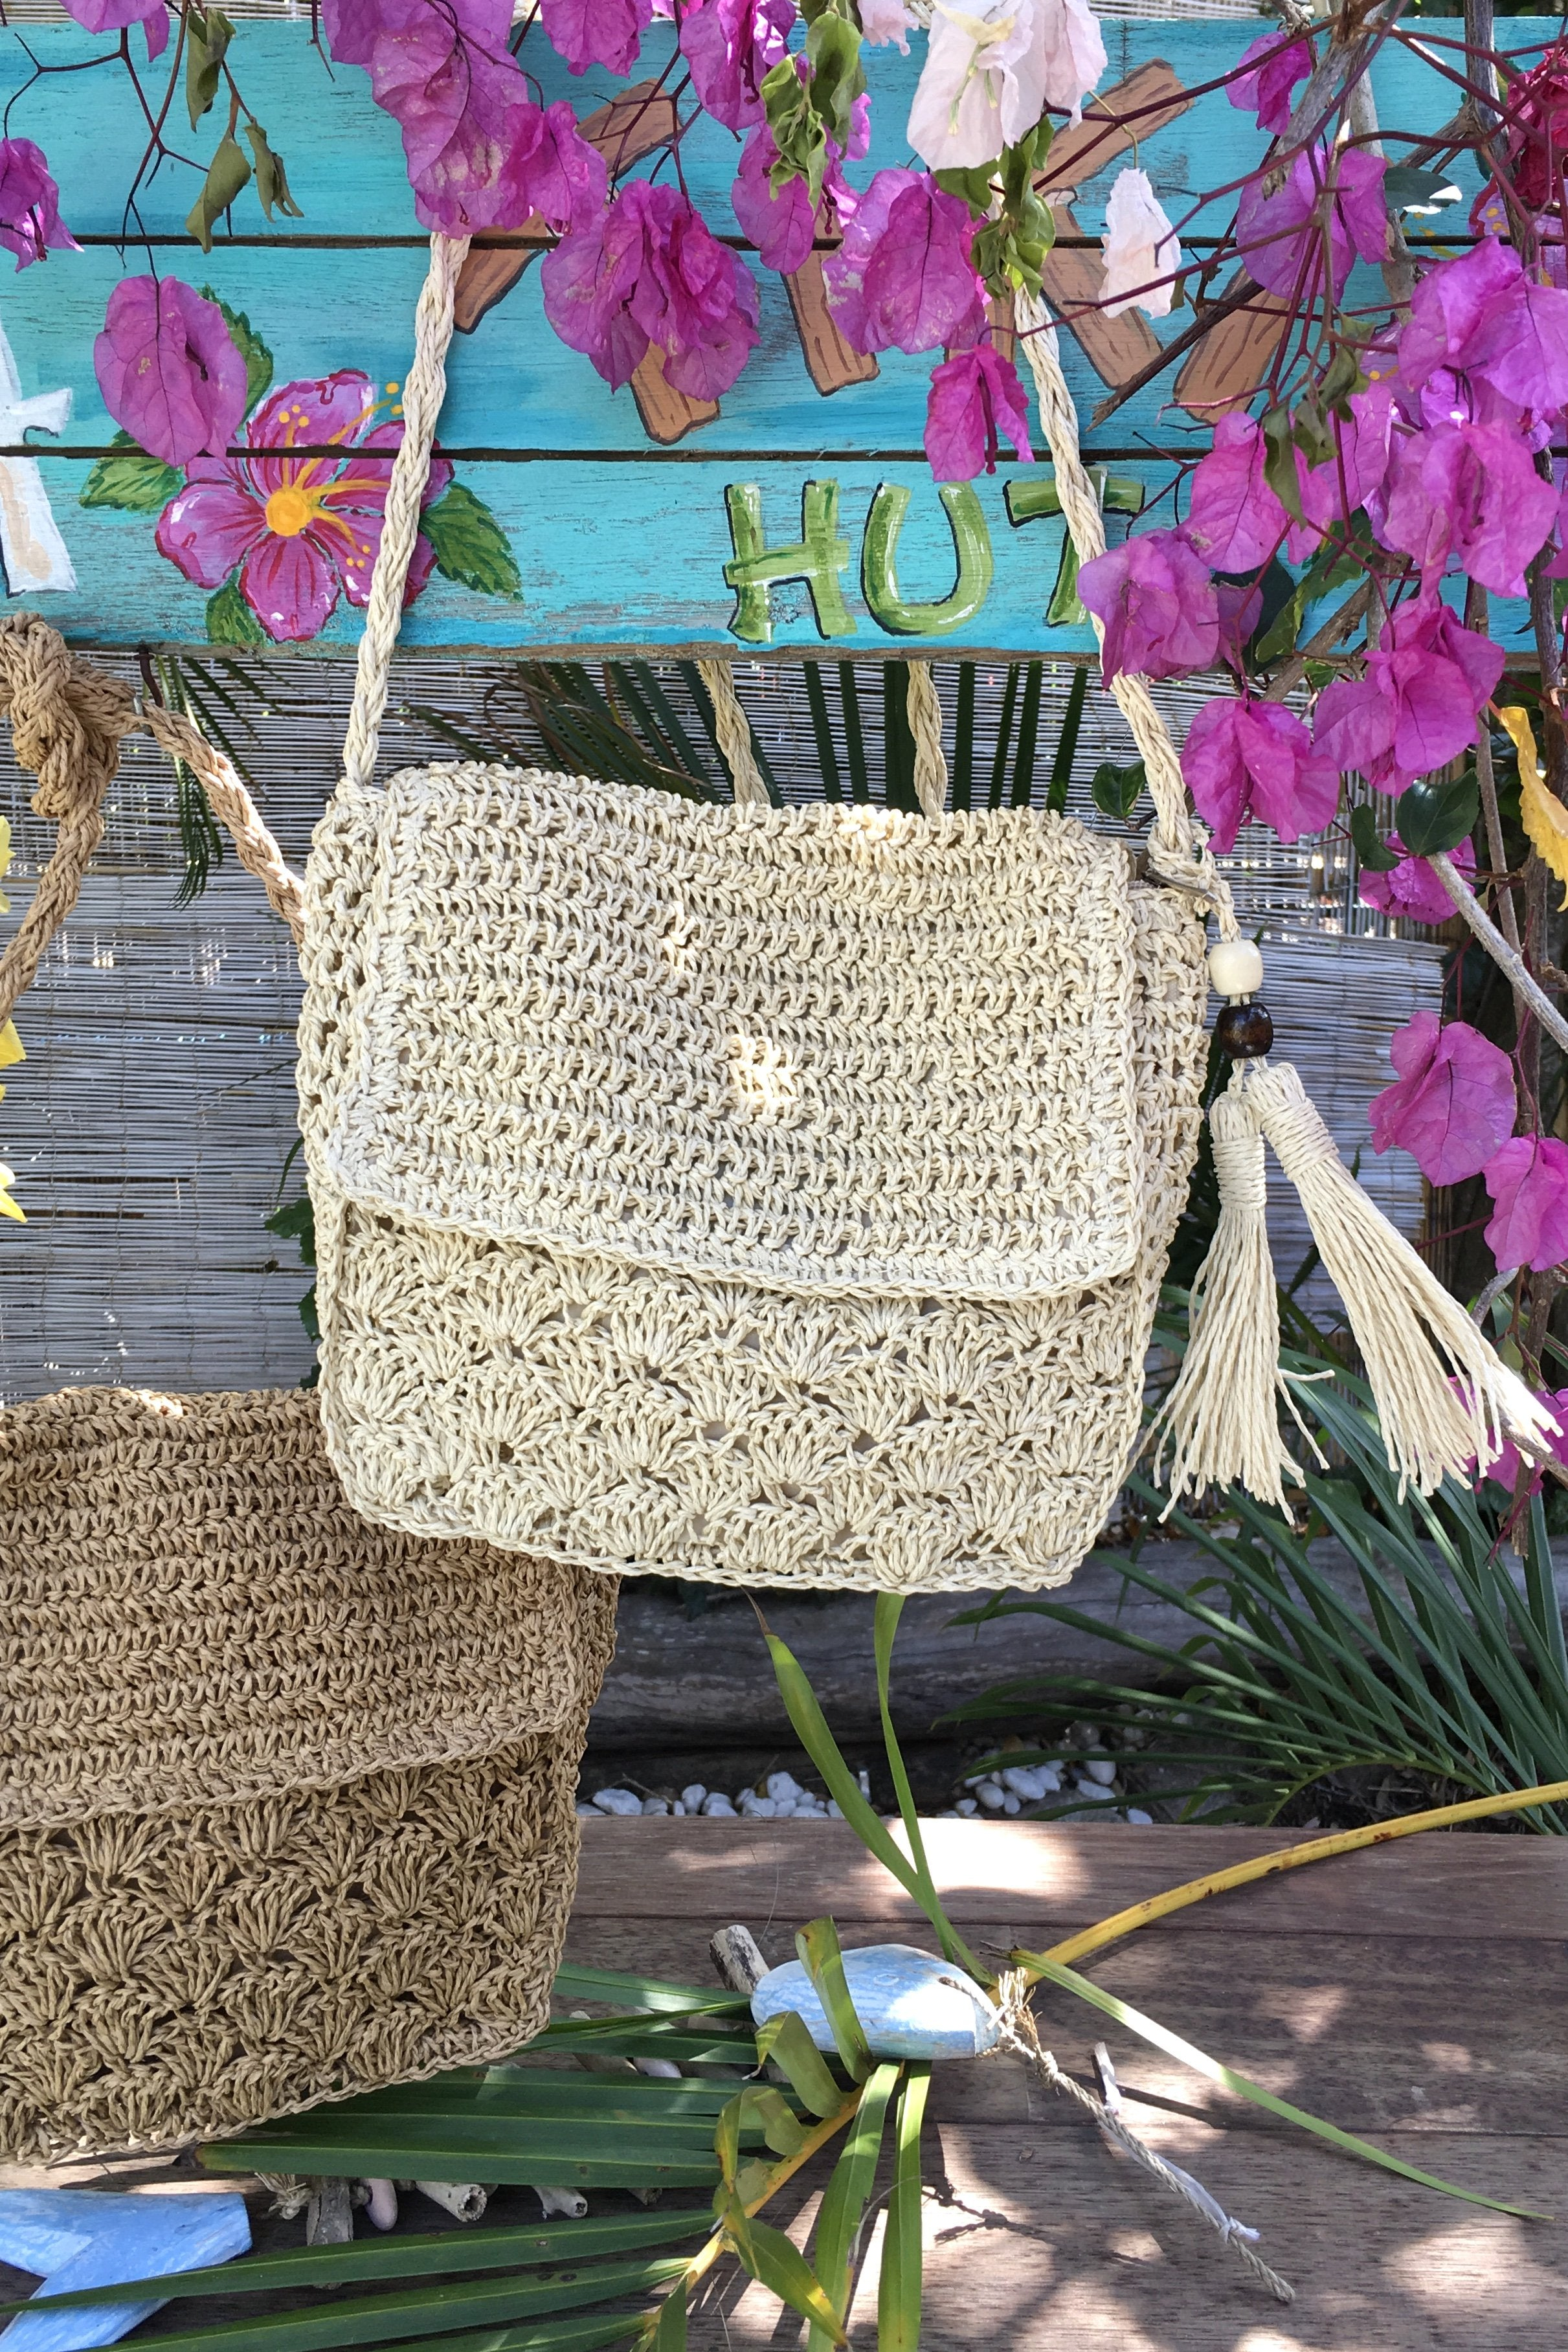 The Bag Lillie Loves Shelley Cream or Tan is an alternative woven straw bag with a cool tassel and bead feature, and a front cover flag and zip